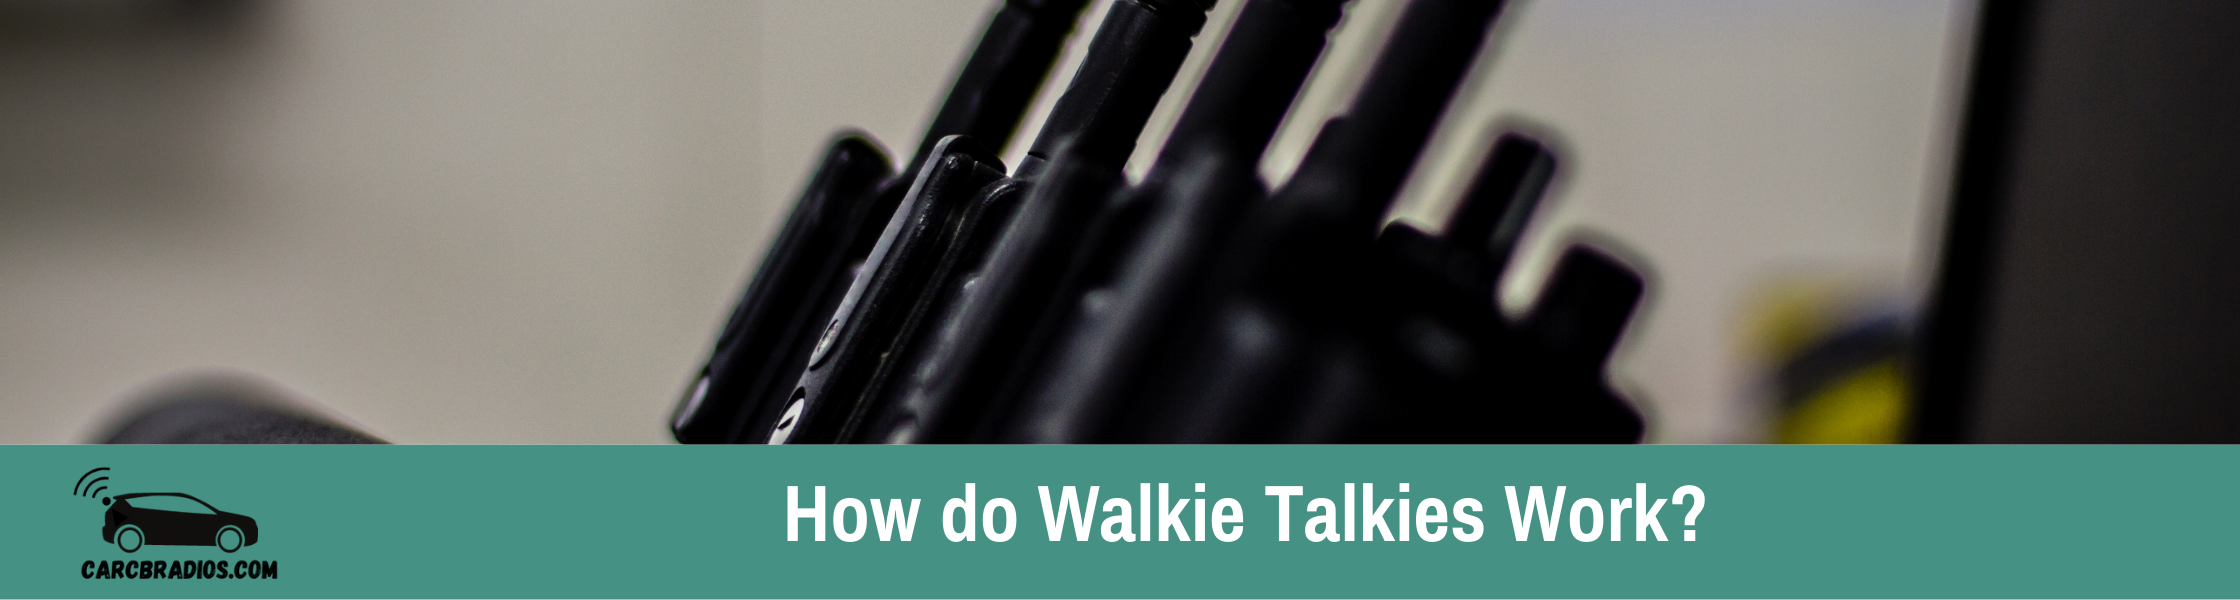 How do Walkie Talkies Work?: It works like this: human speech is converted into vibrations that travel through the air at a certain frequency, which we hear as sounds.